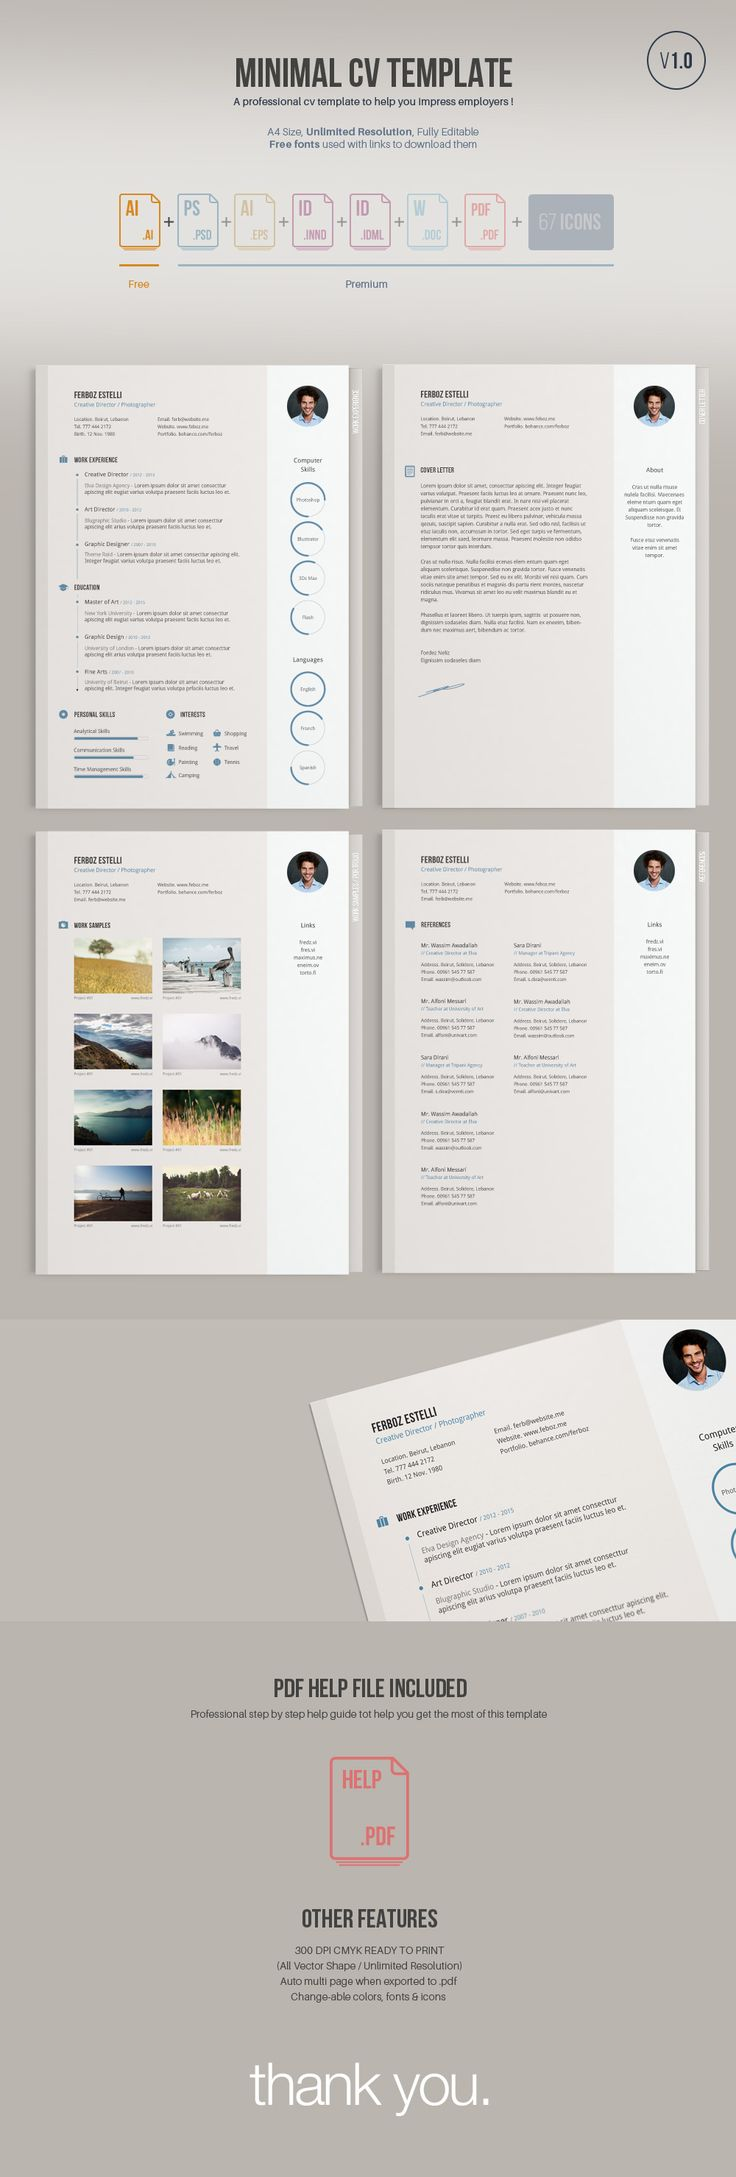 Template Cv Free Resume Template Designs Creatives Curriculum Vitae